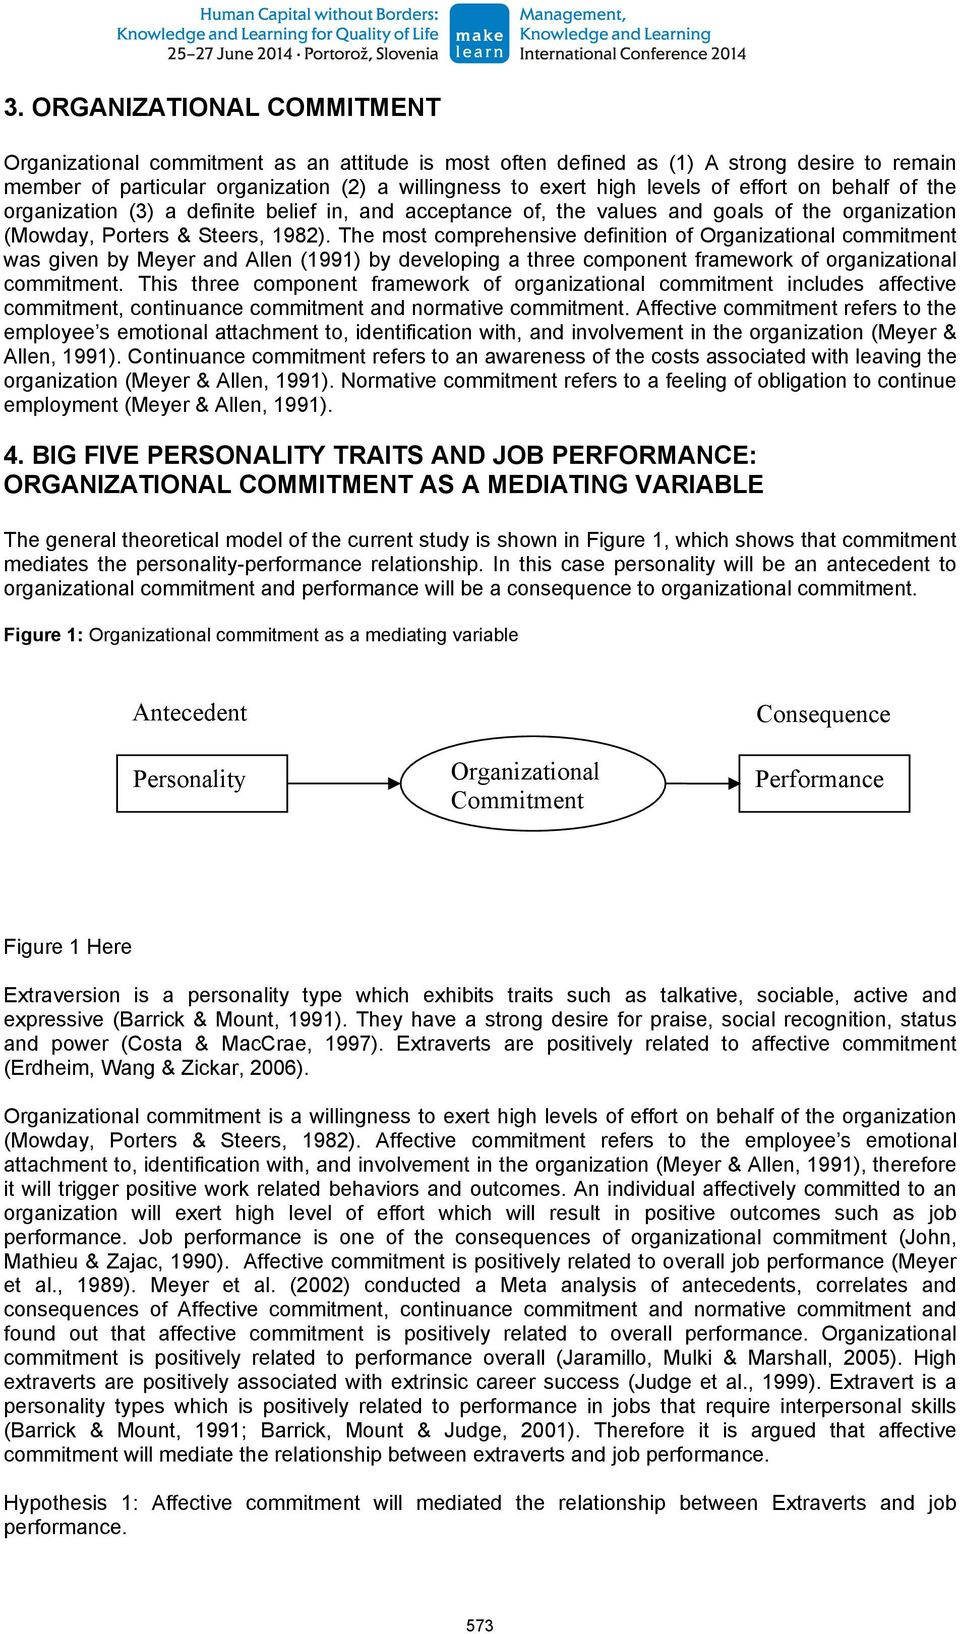 The most comprehensive definition of Organizational commitment was given by Meyer and Allen (1991) by developing a three component framework of organizational commitment.